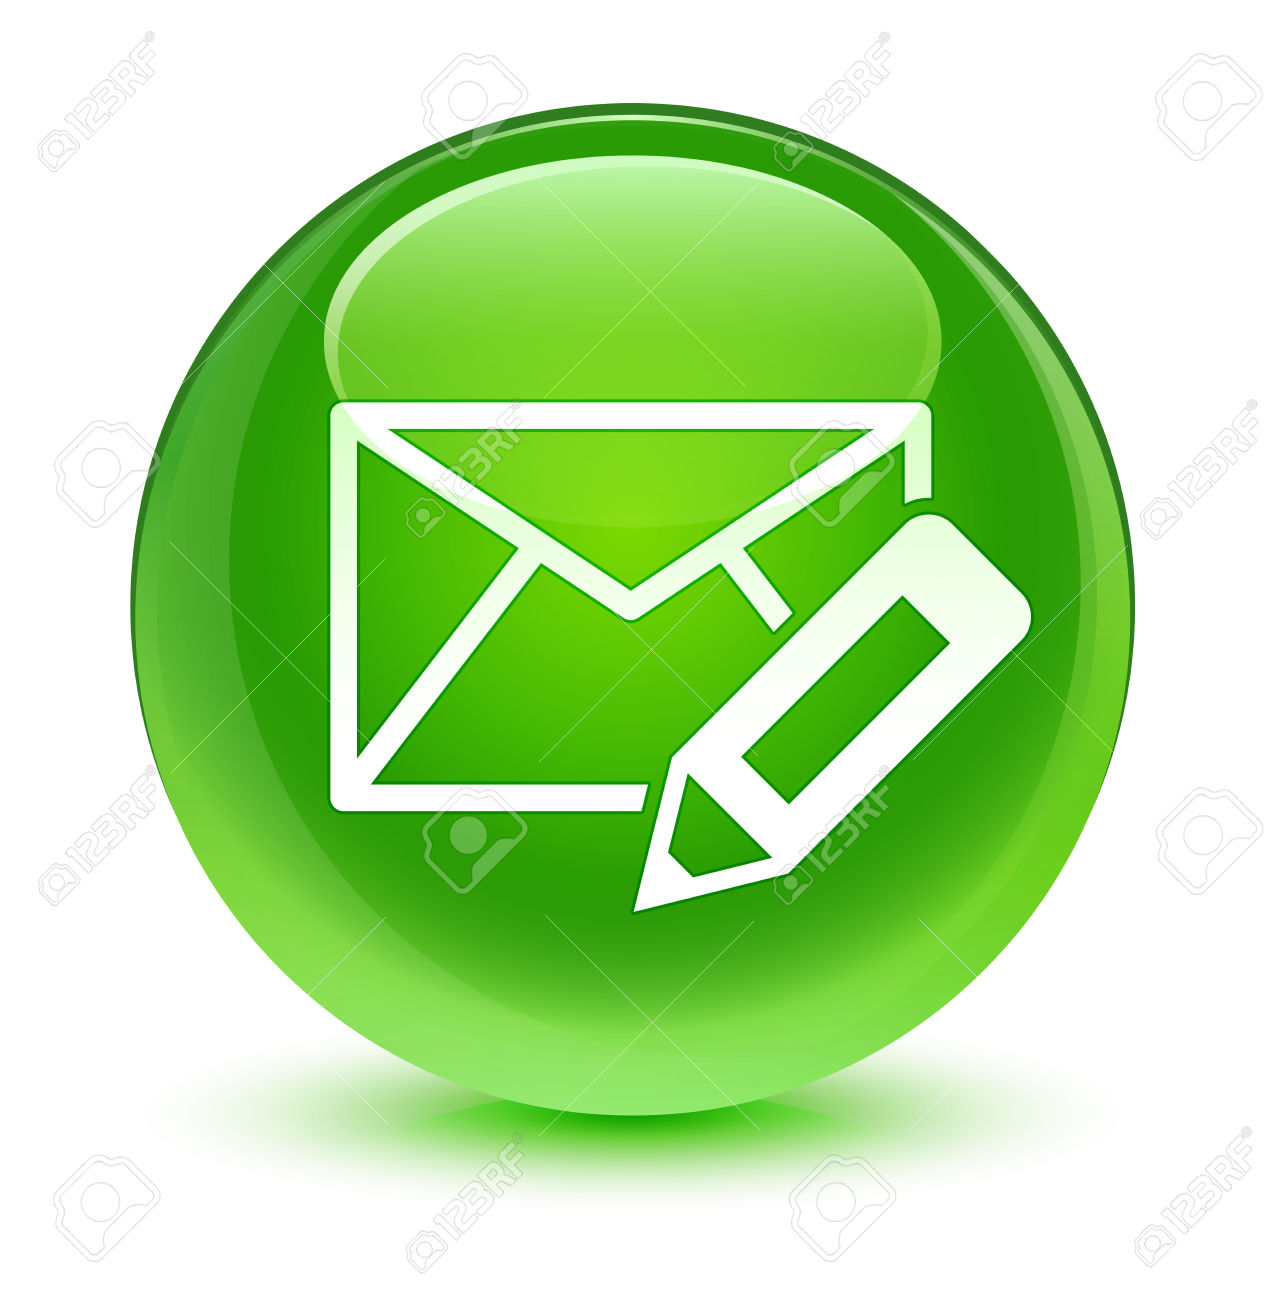 Edit email icon glassy green button